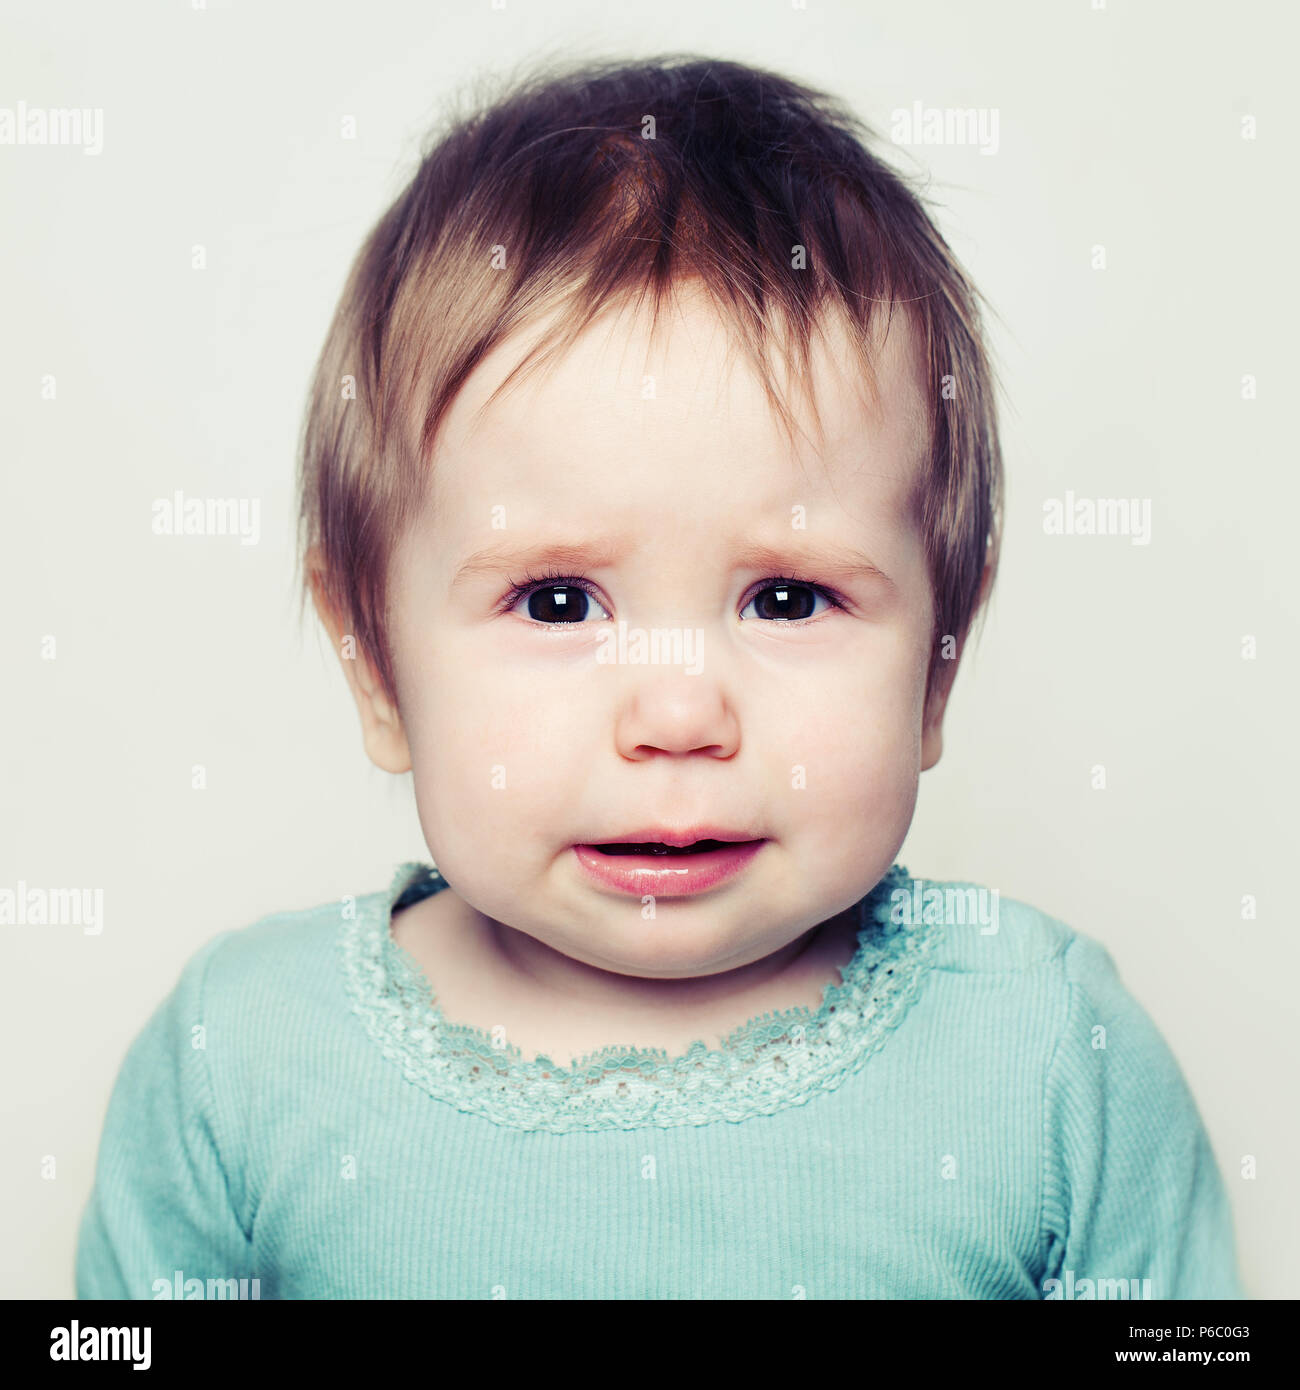 aa6b9f28d Sad Baby Stock Photos   Sad Baby Stock Images - Alamy